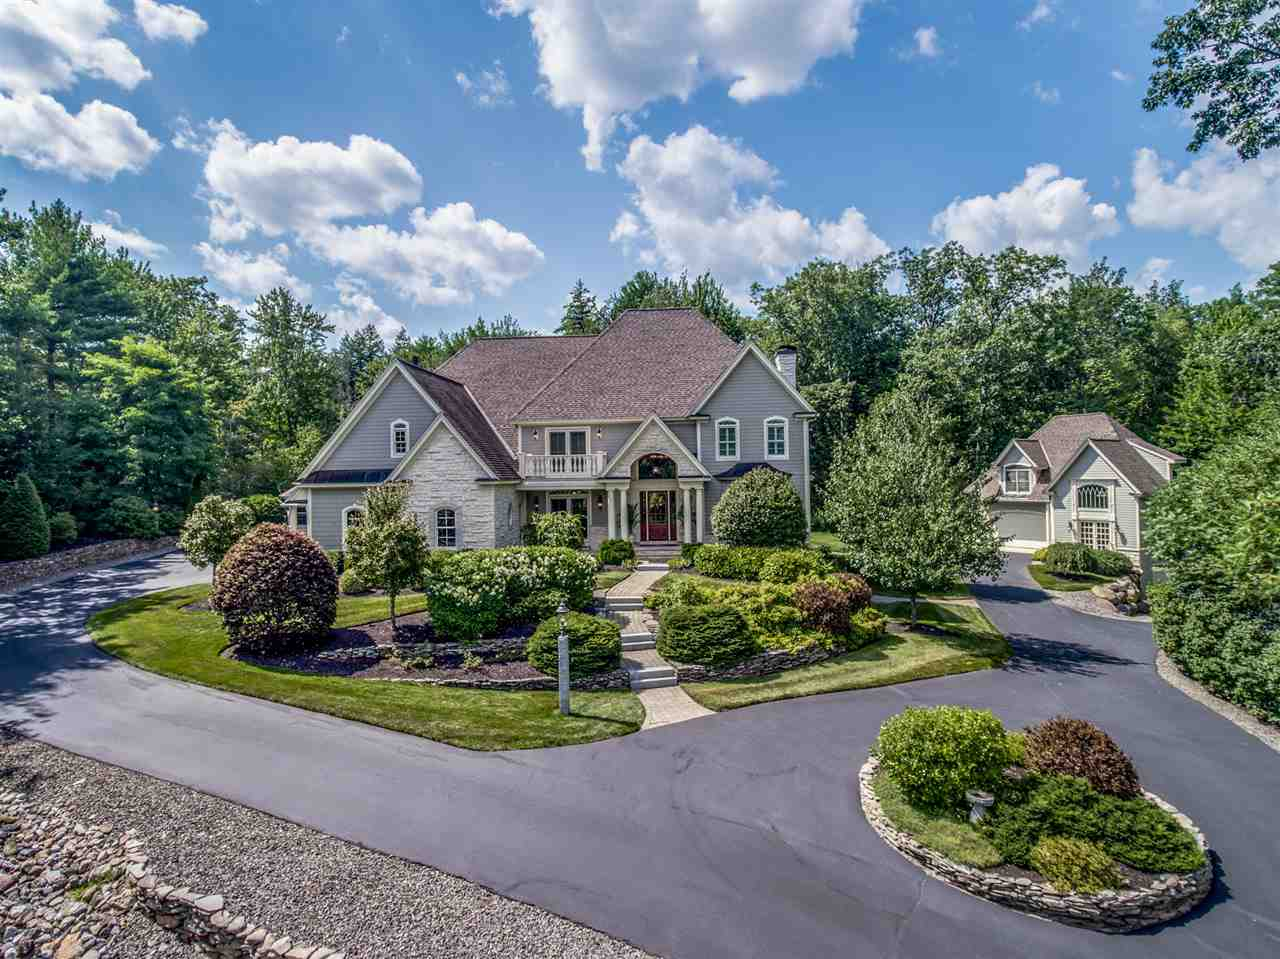 Photo of 8 CHABLIS Court Bedford NH 03110